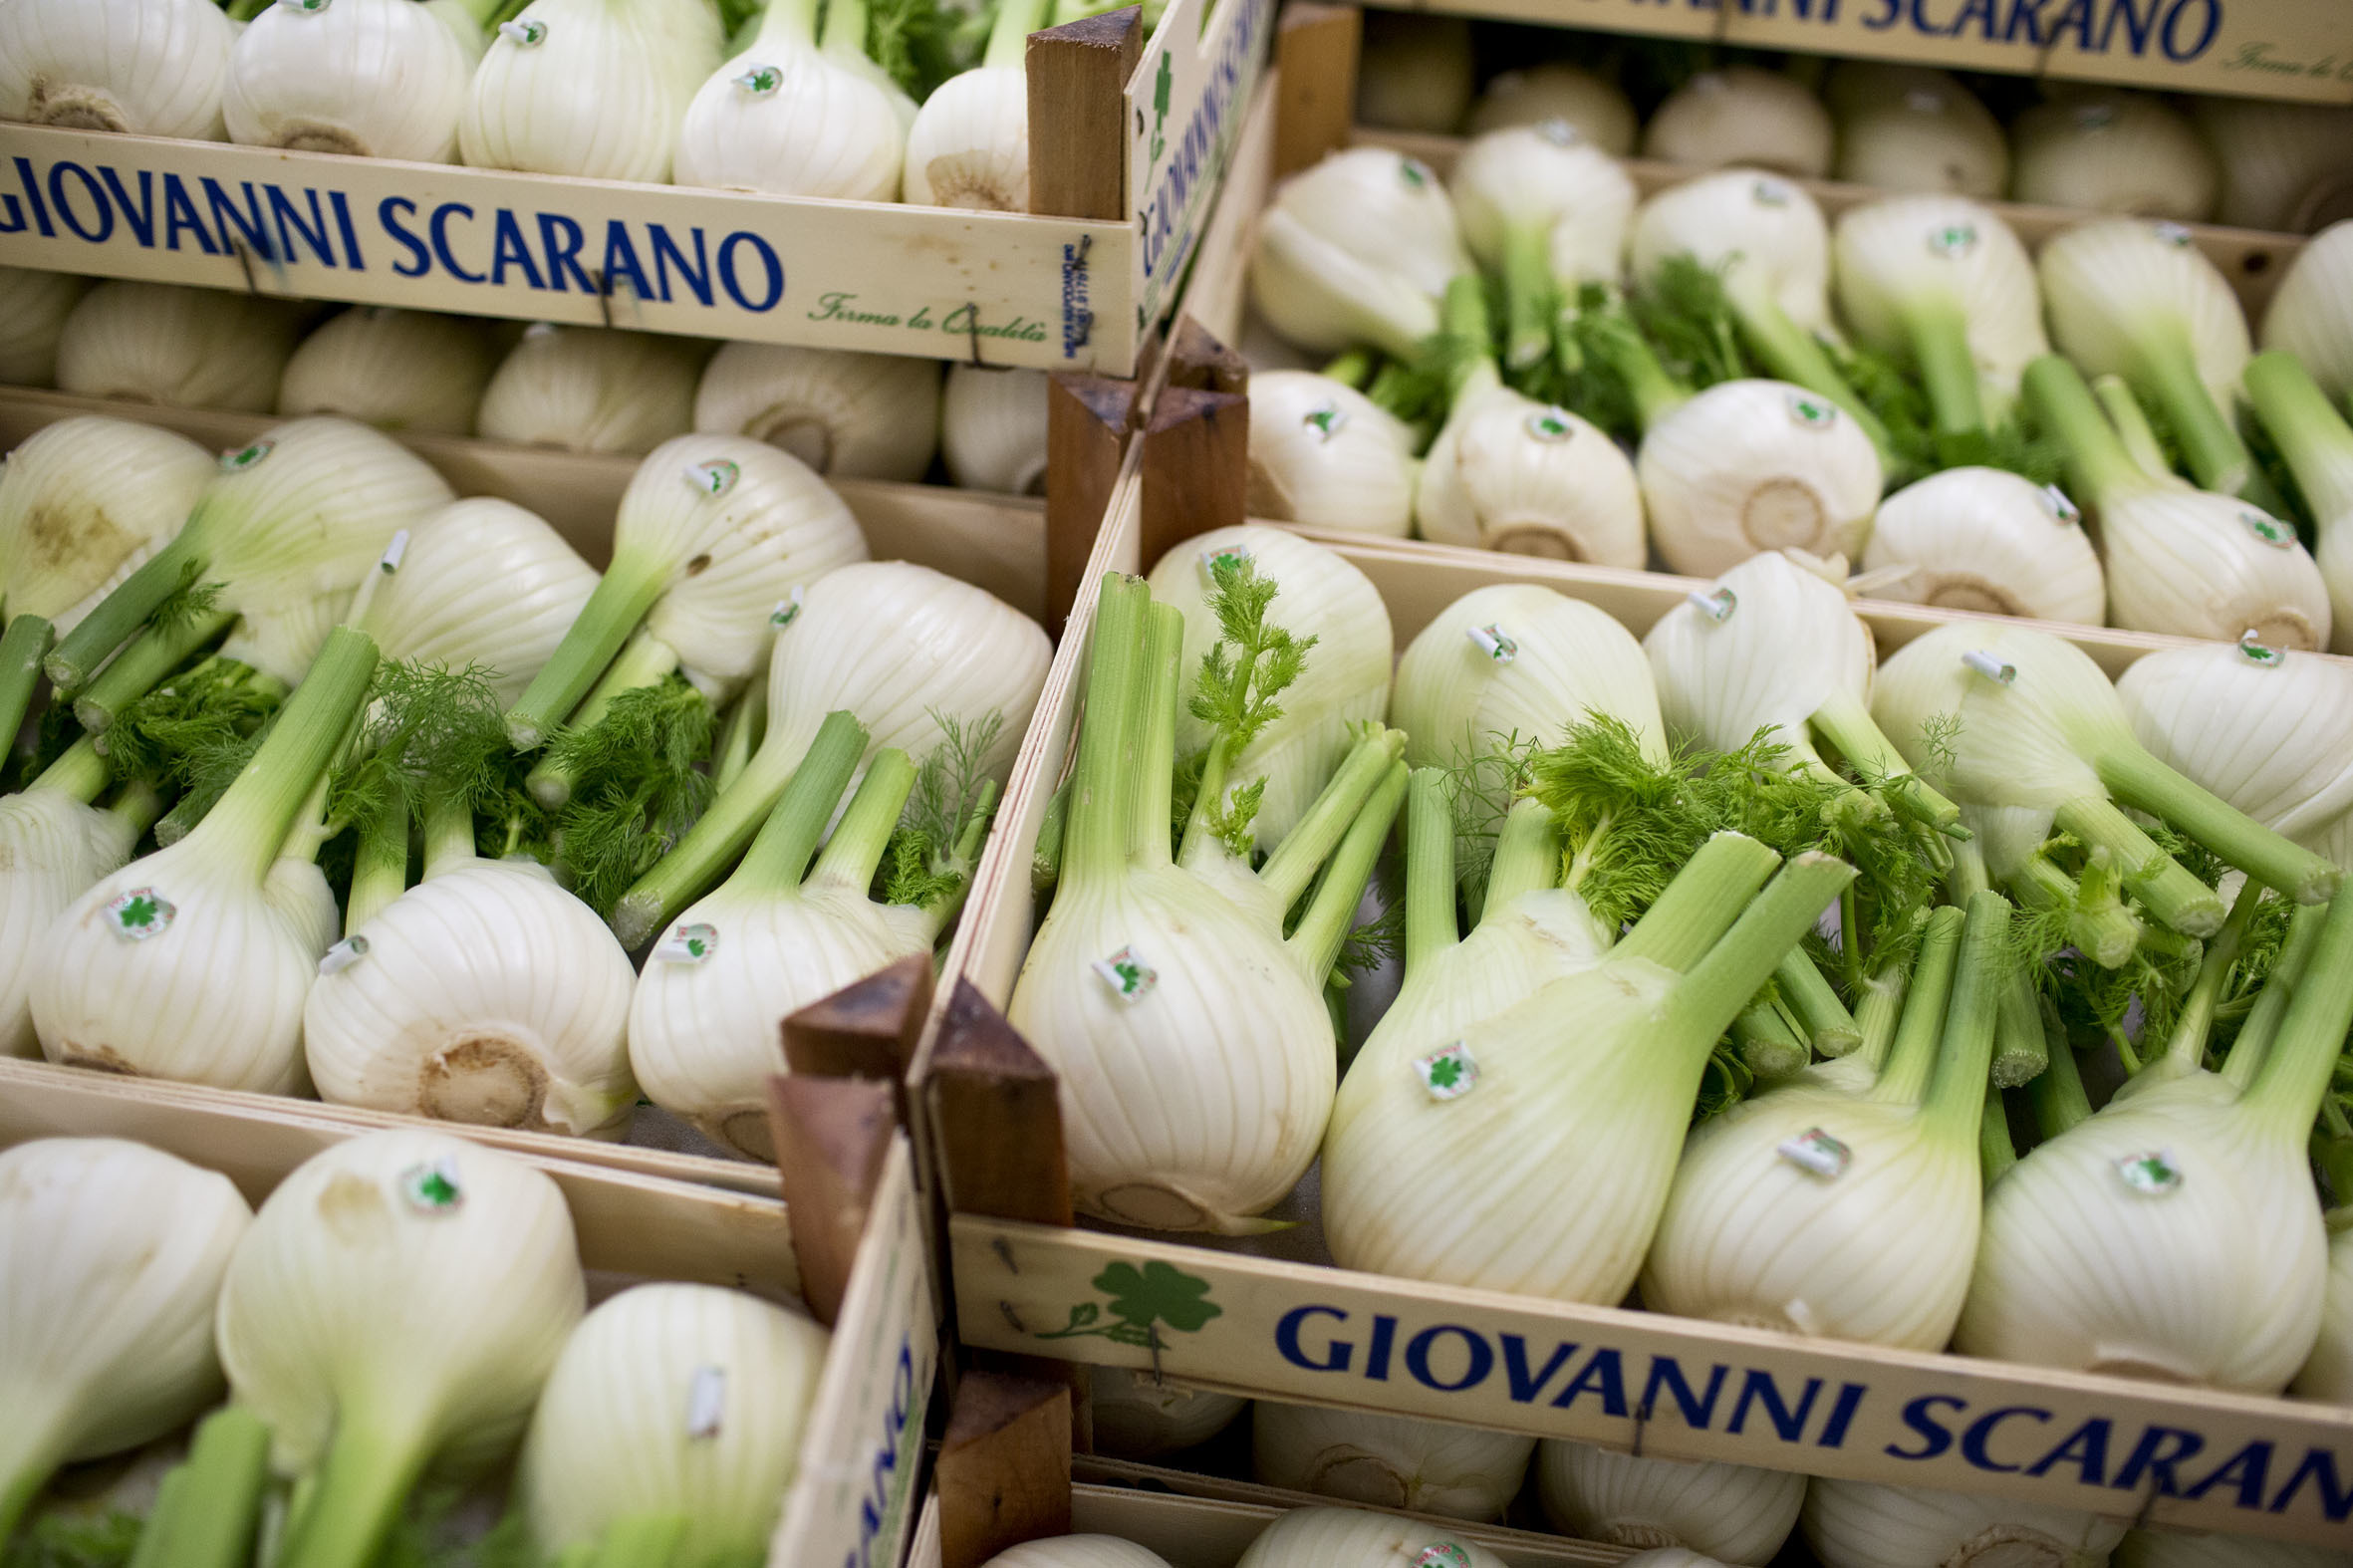 fruit-and-vegetable-market-report-march-2014-fennel.jpg?mtime=20170922112630#asset:11325